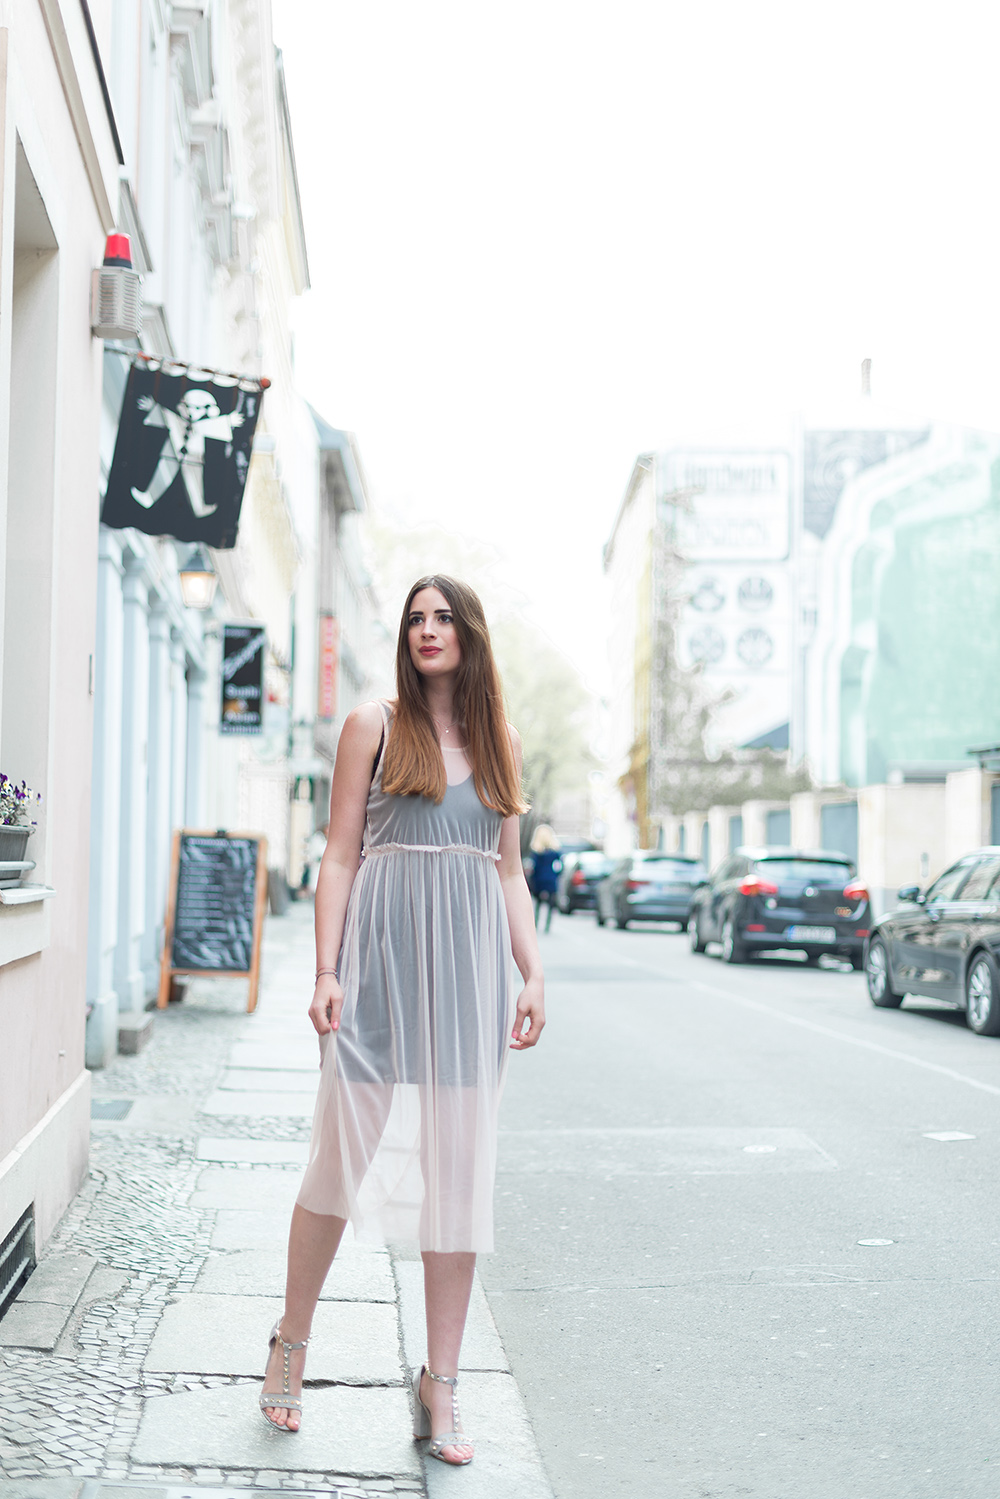 Modeblog-Deutschland-Deutsche-Mode-Mode-Influencer-Andrea-Funk-andysparkles-Berlin-Kronjuwelen-Jewels-to-go